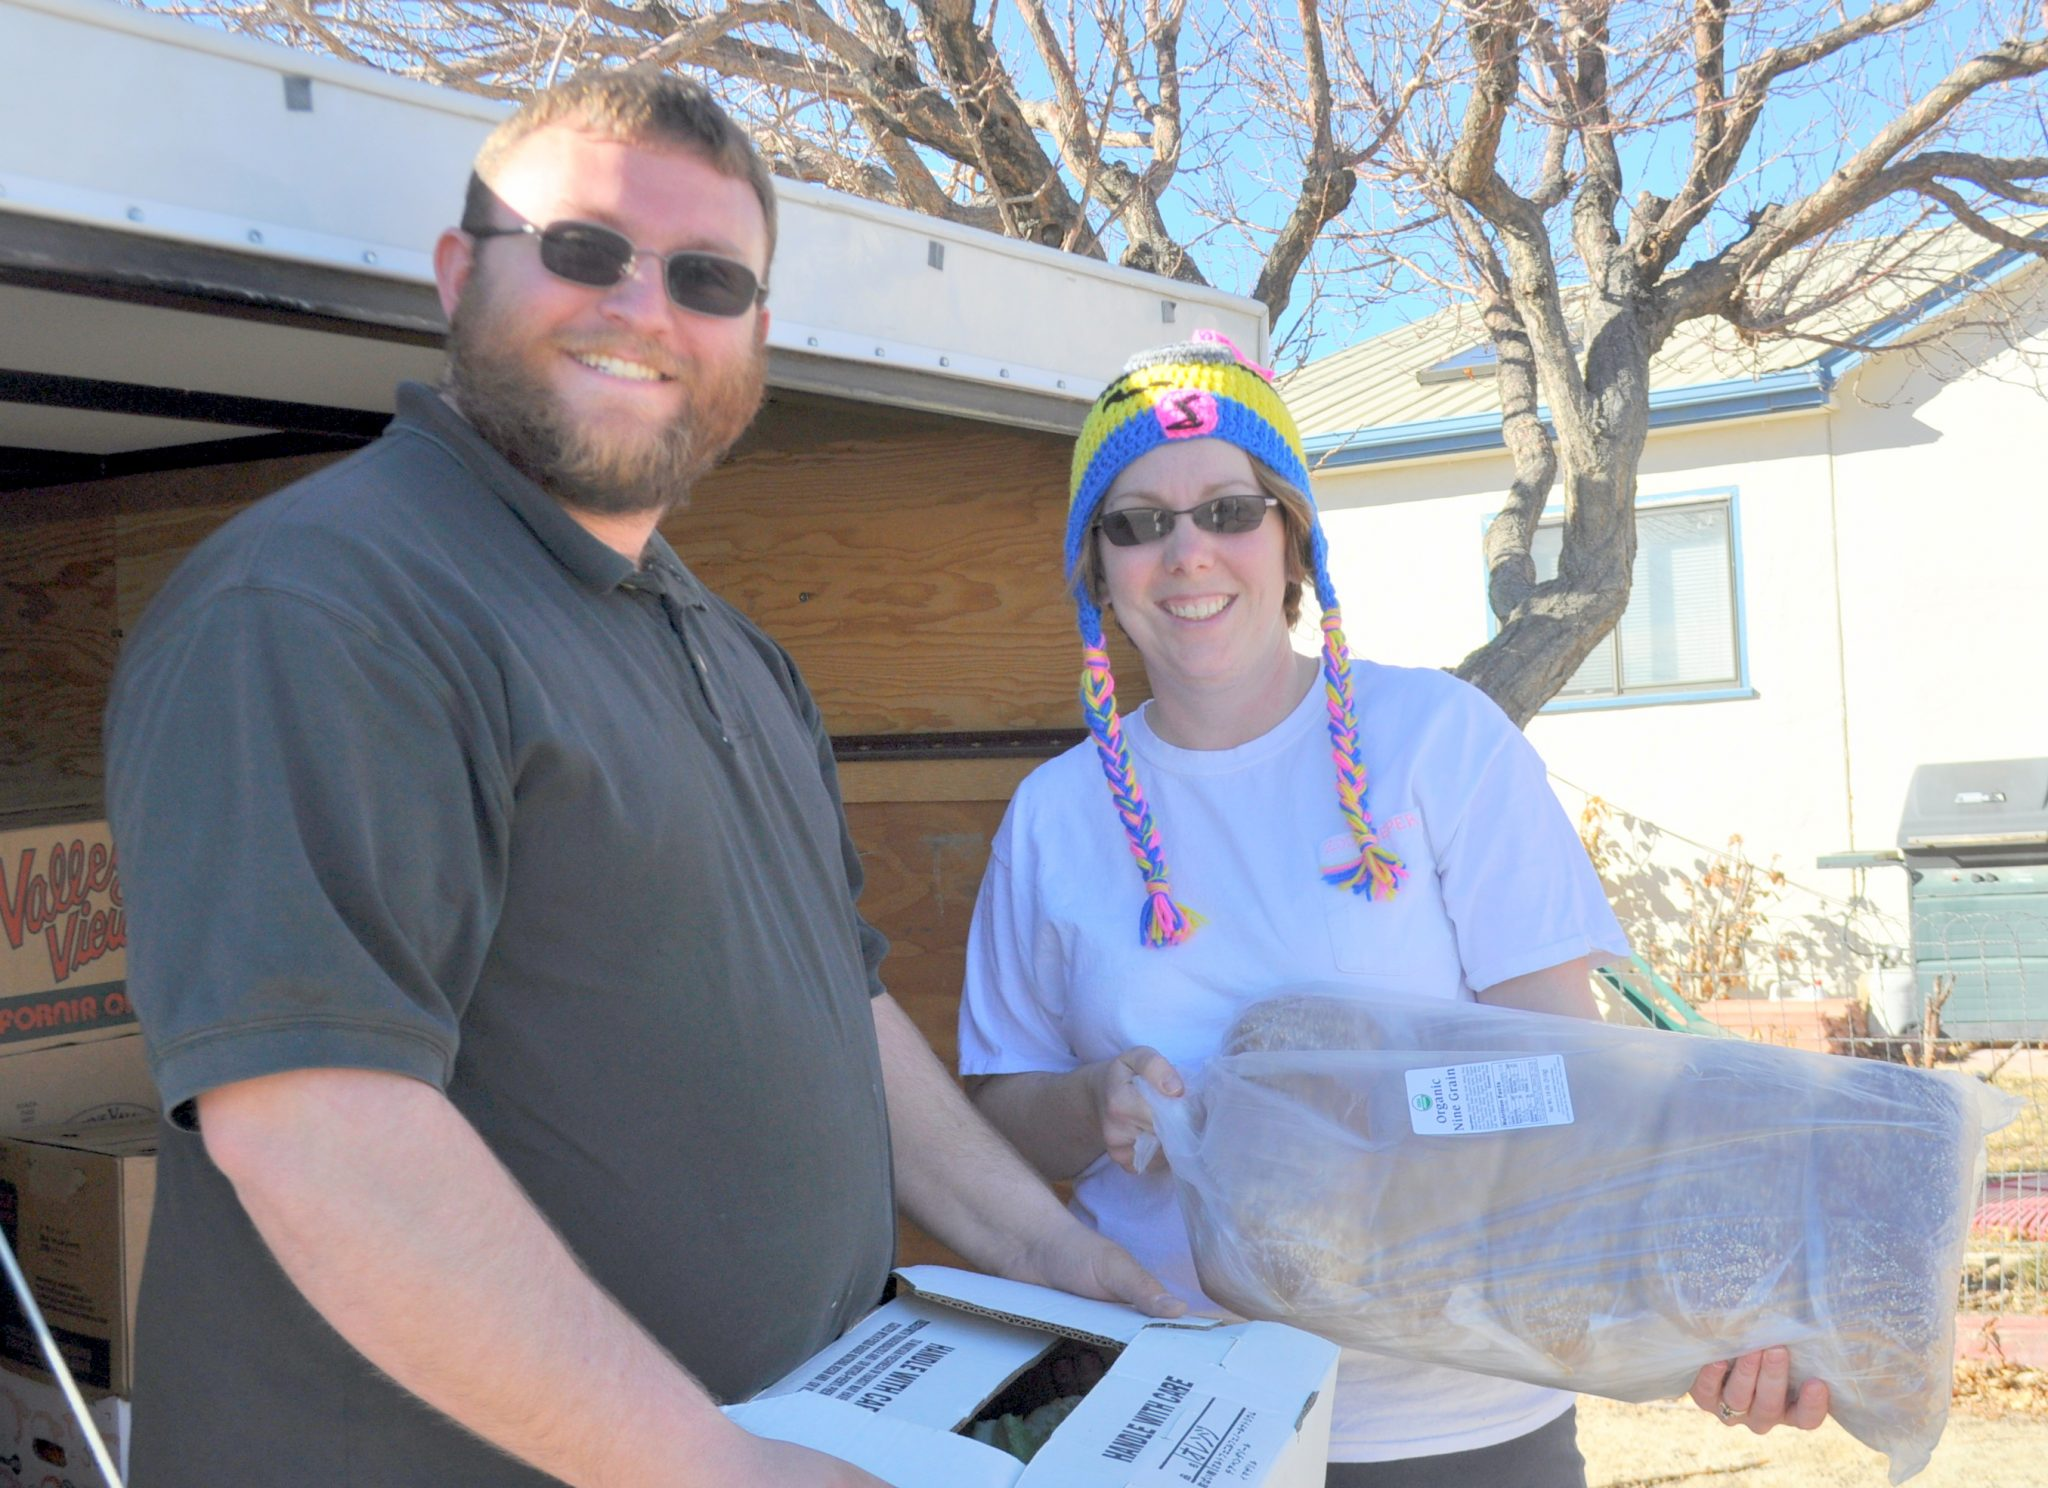 Hawthorne couple brings healthy choices to town